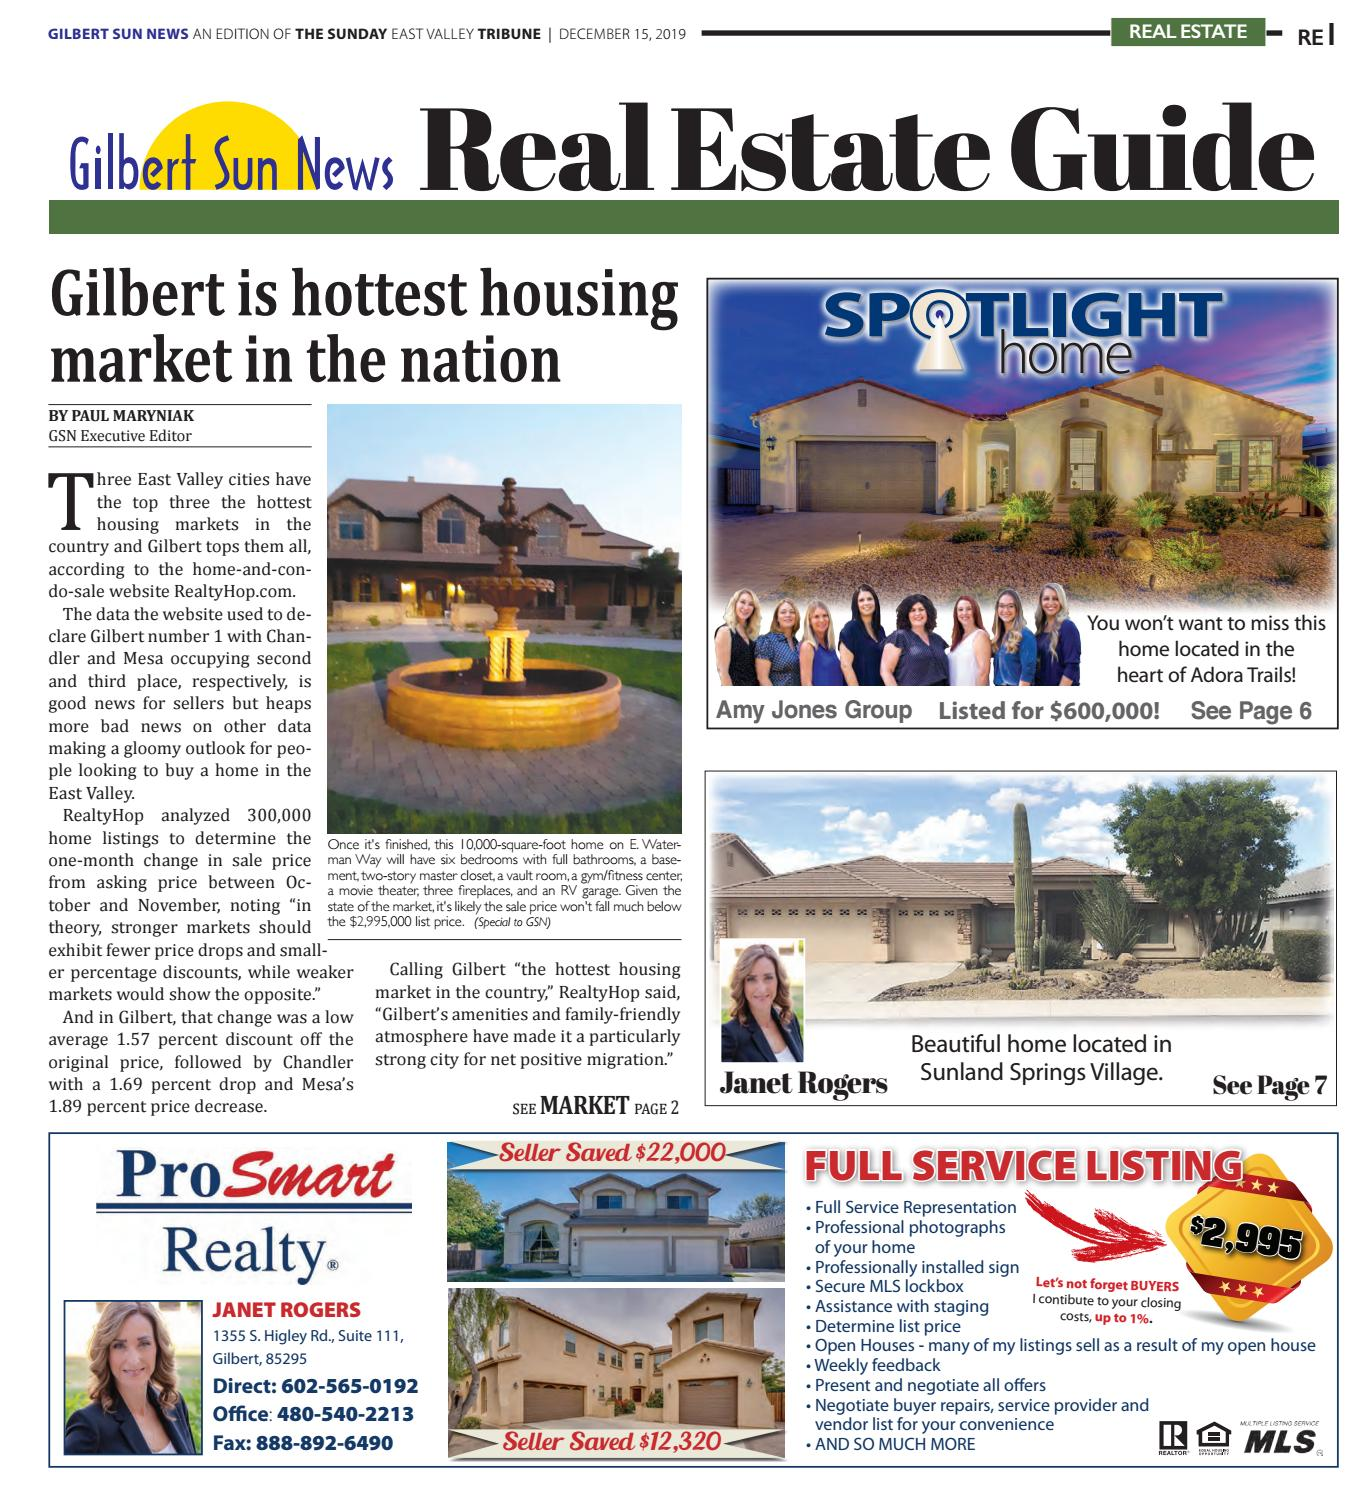 Gilbert Sun News Real Estate Guide December 2019